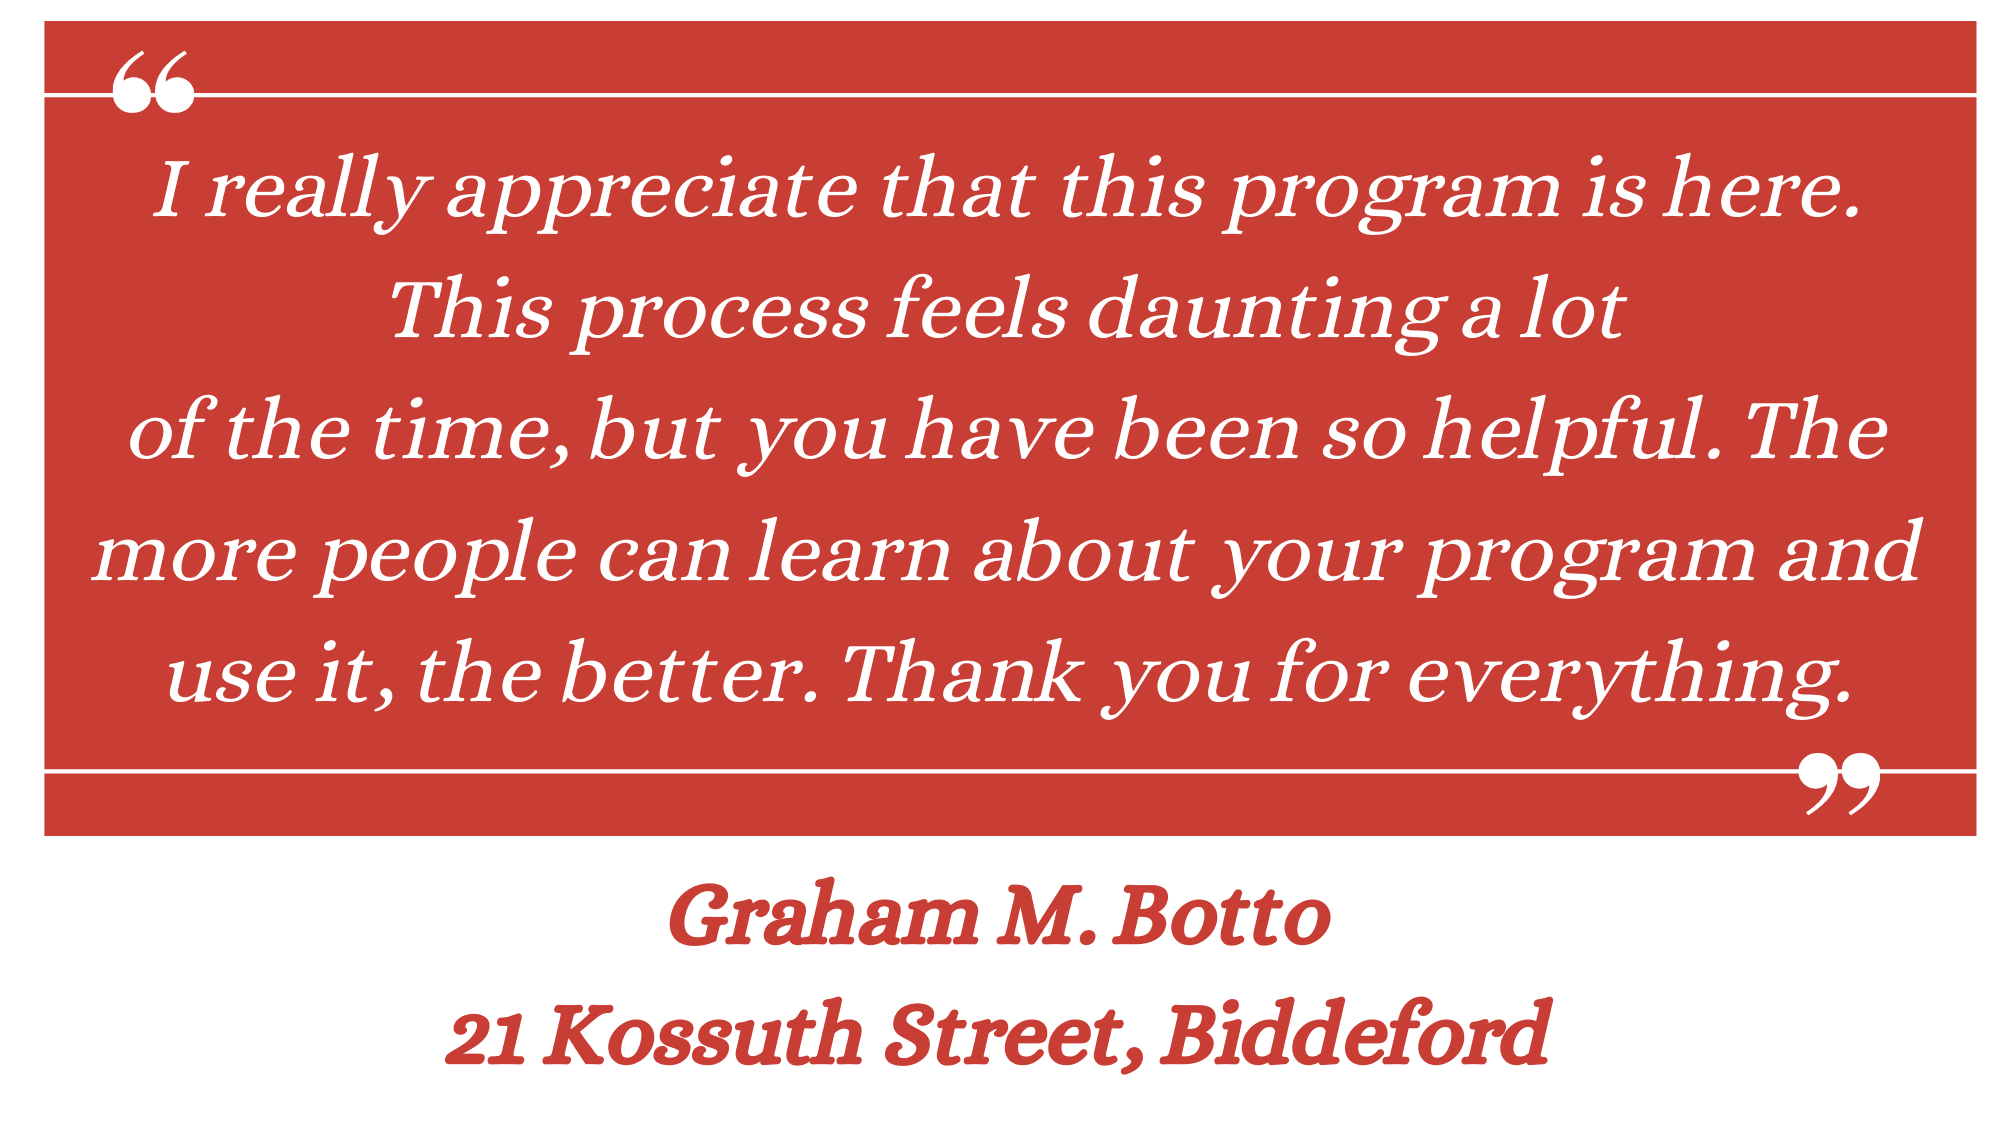 Graham M. Botto Lead Testimonial